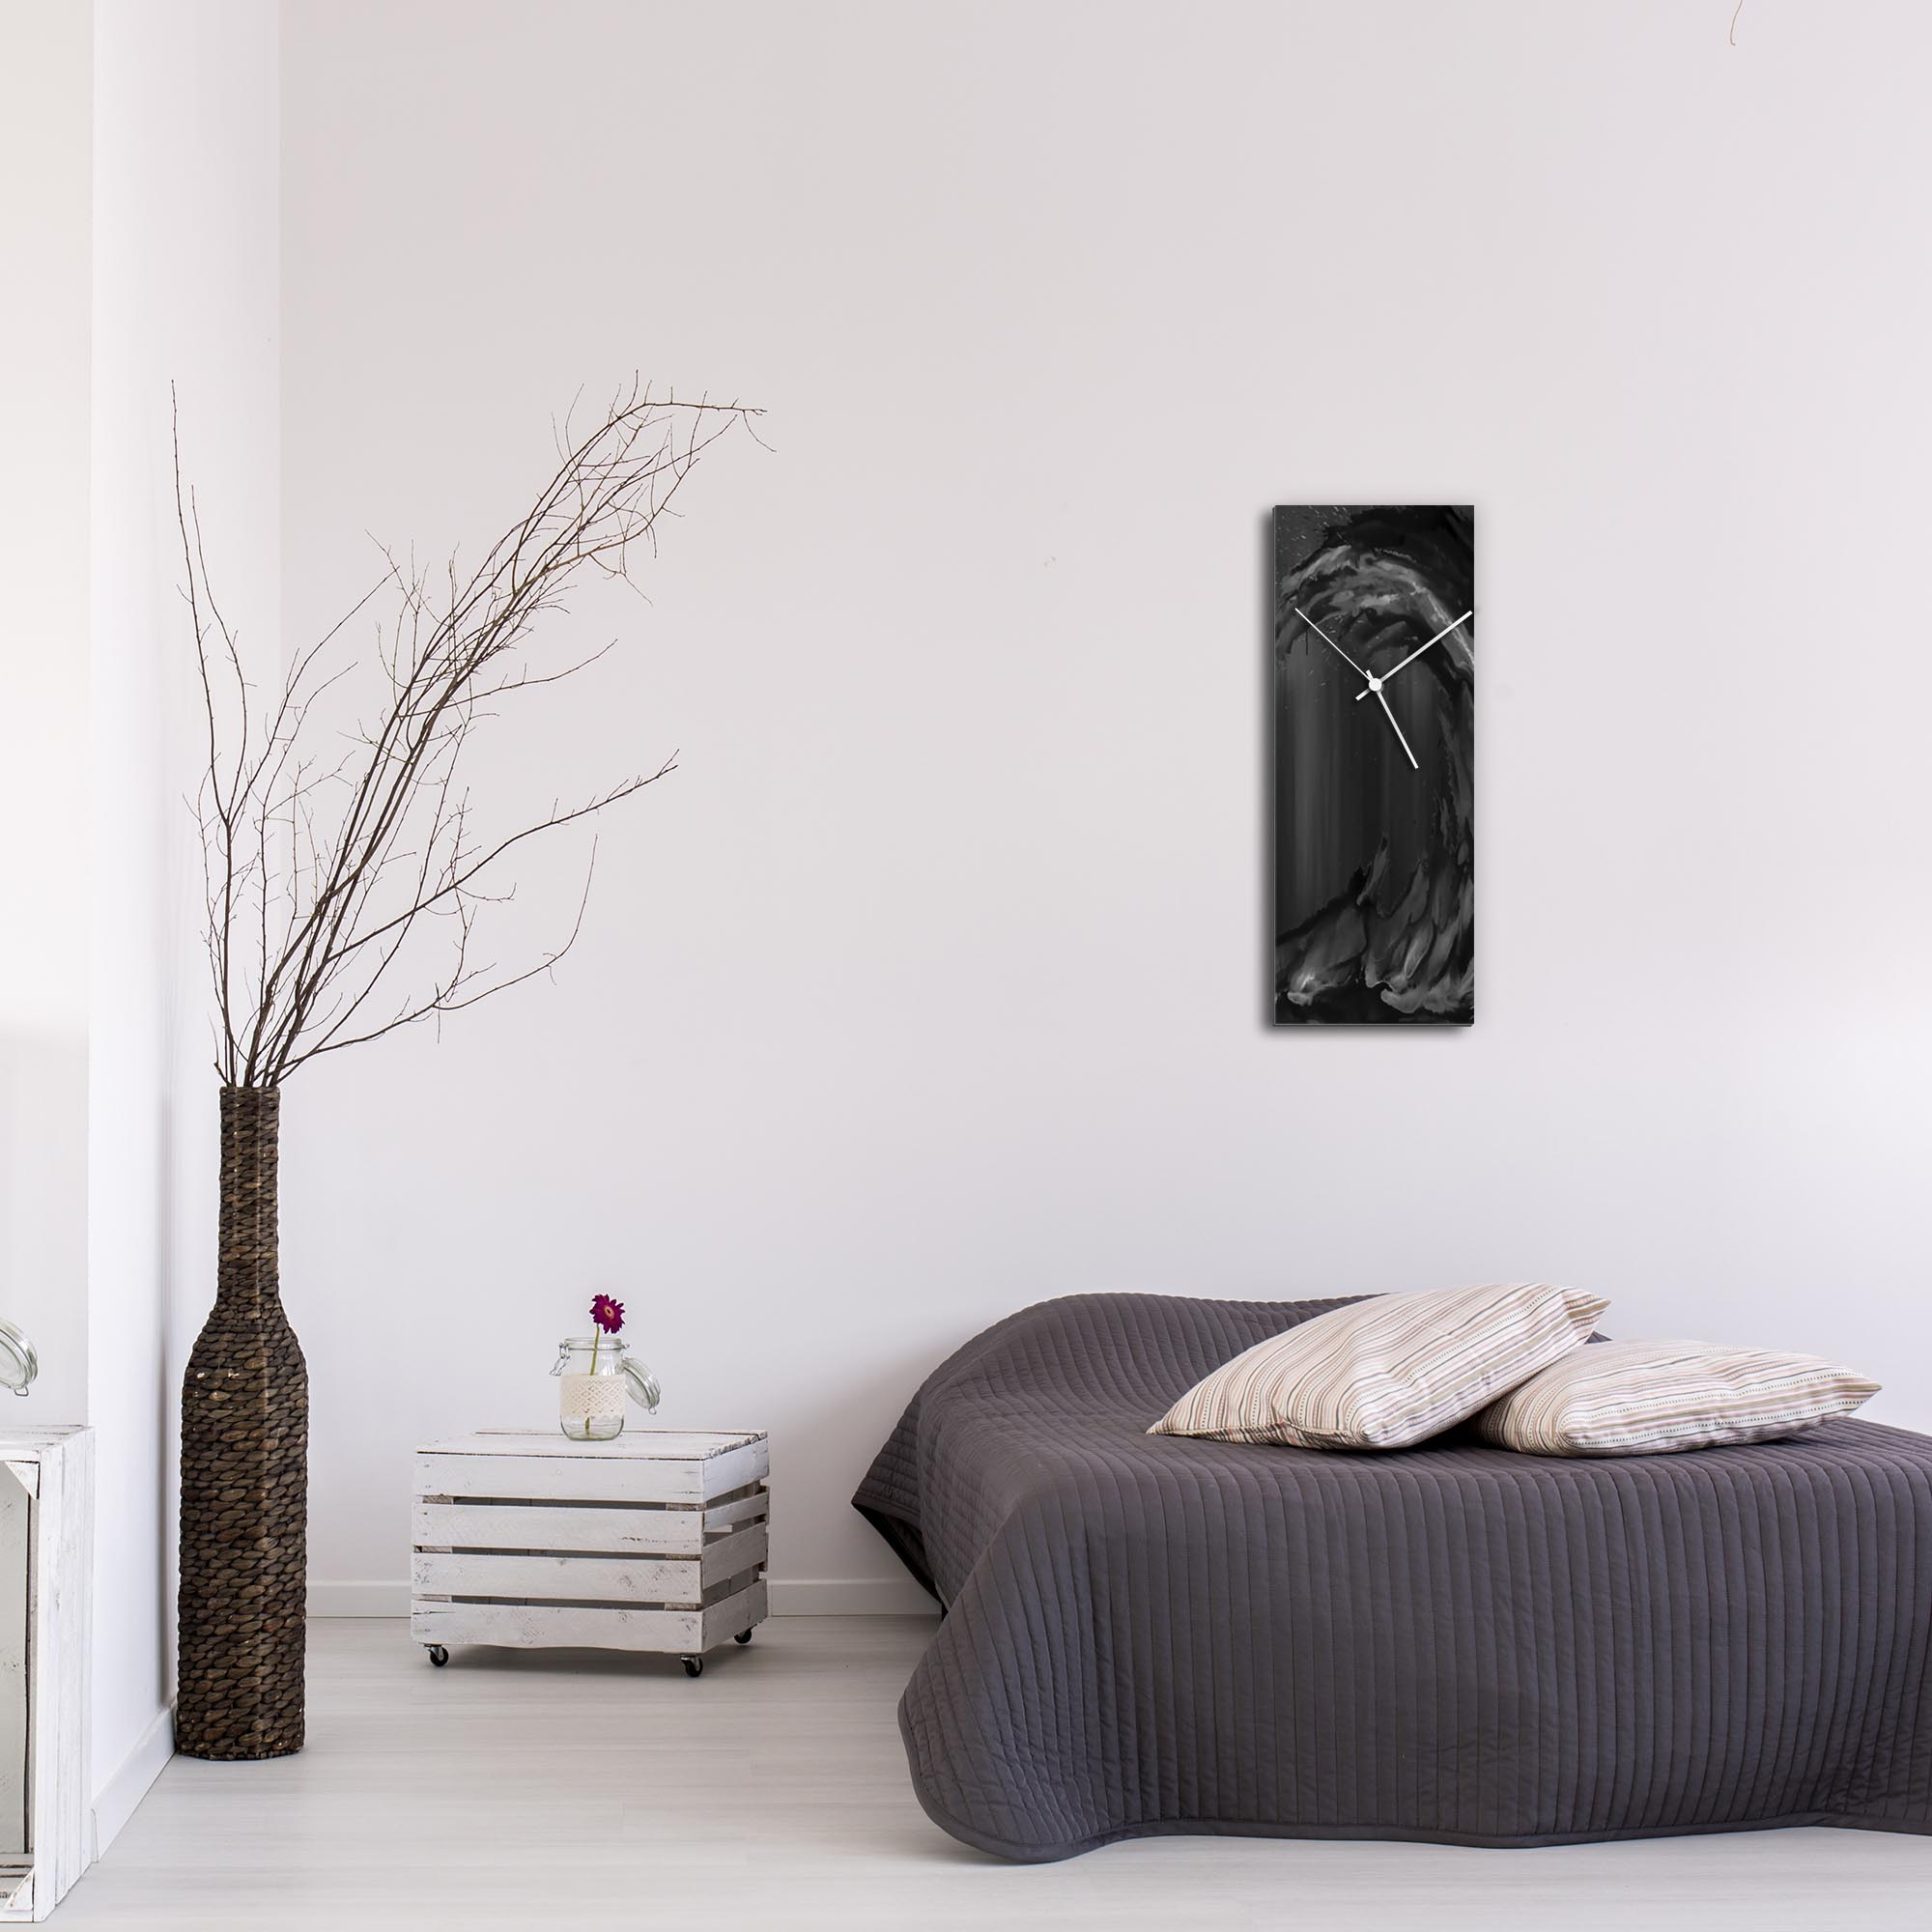 Black Wave v2 Clock Large by Mendo Vasilevski - Urban Abstract Home Decor - Lifestyle View